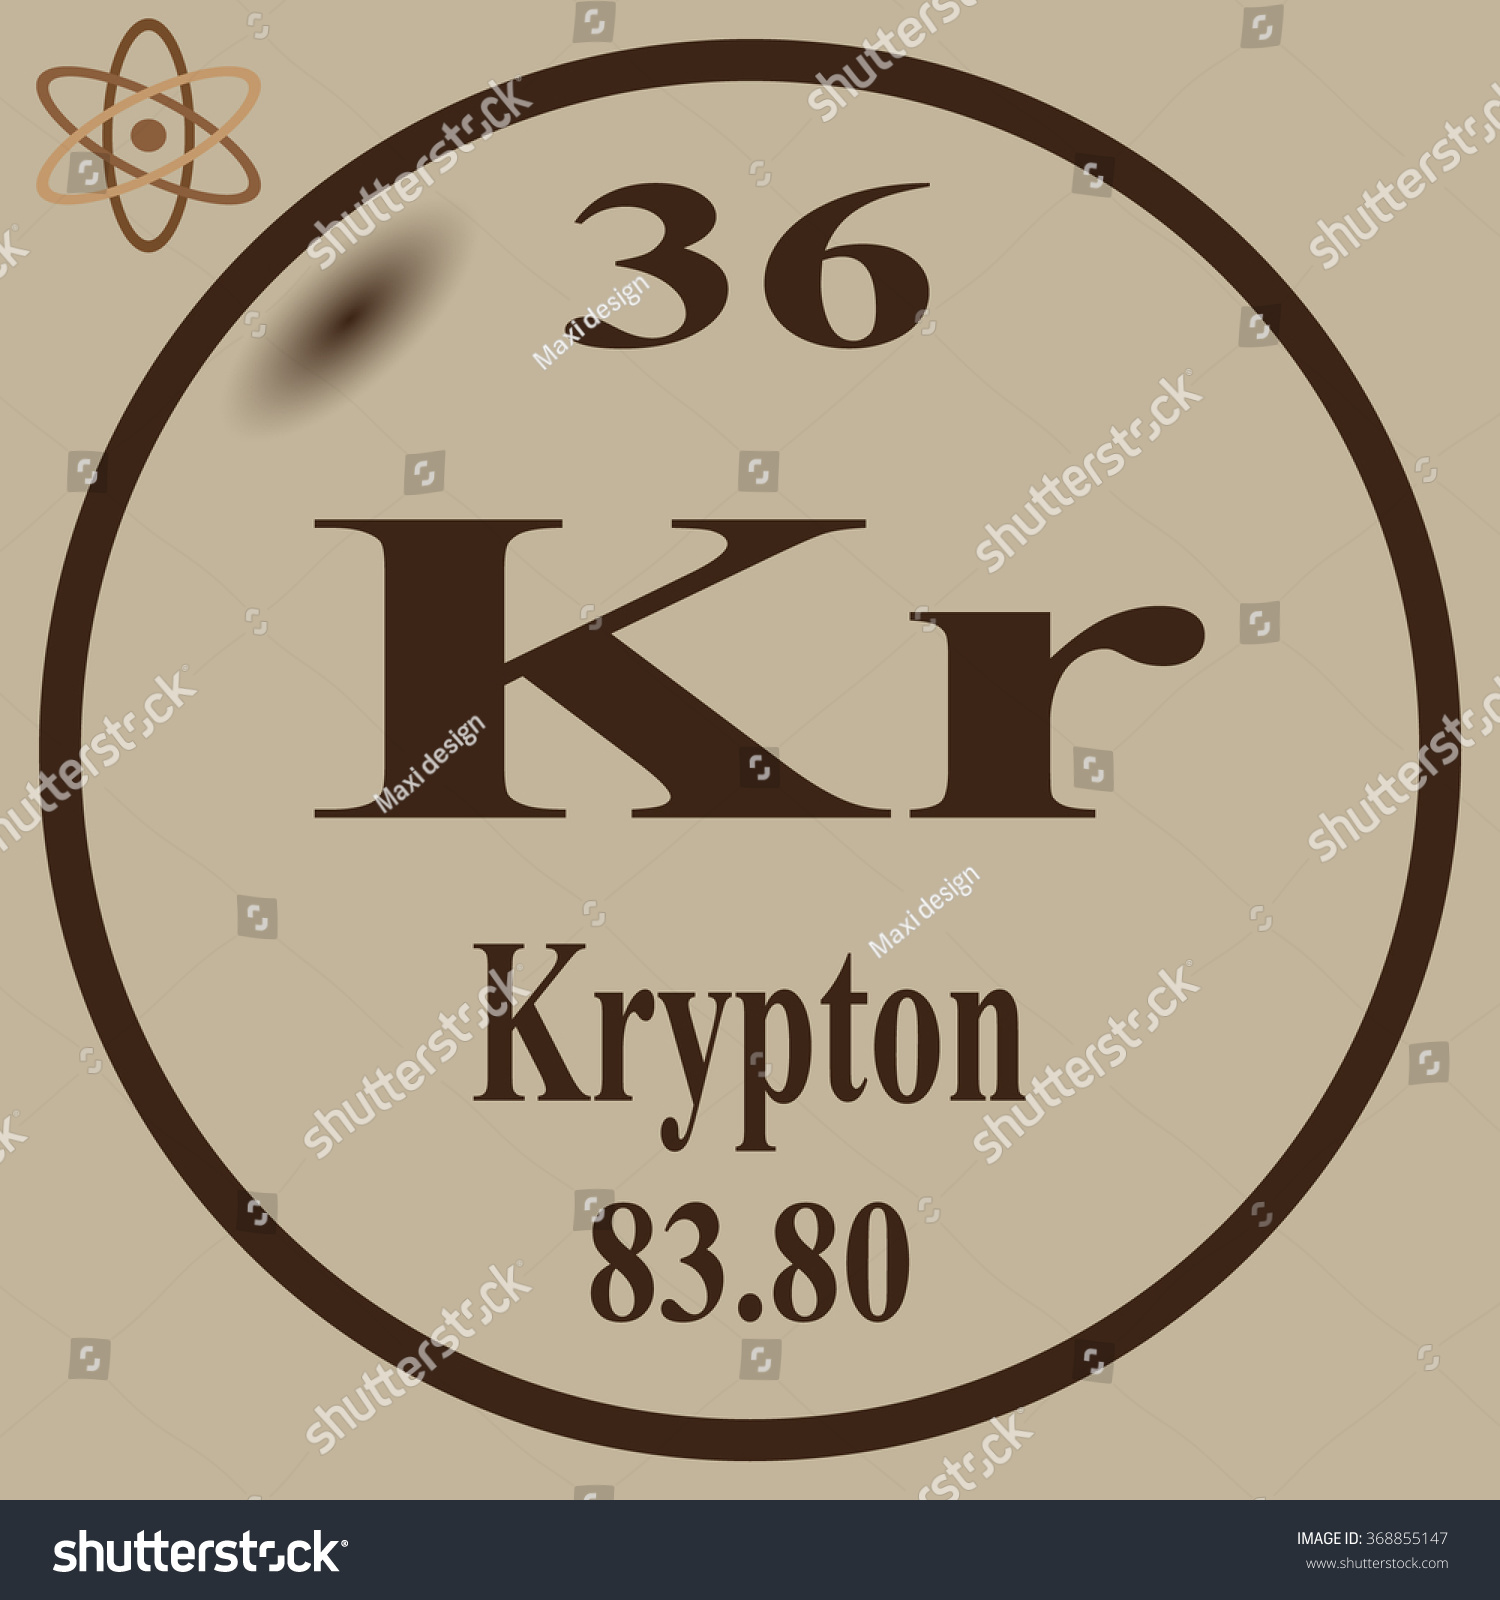 Periodic table elements krypton stock photo photo vector periodic table of elements krypton urtaz